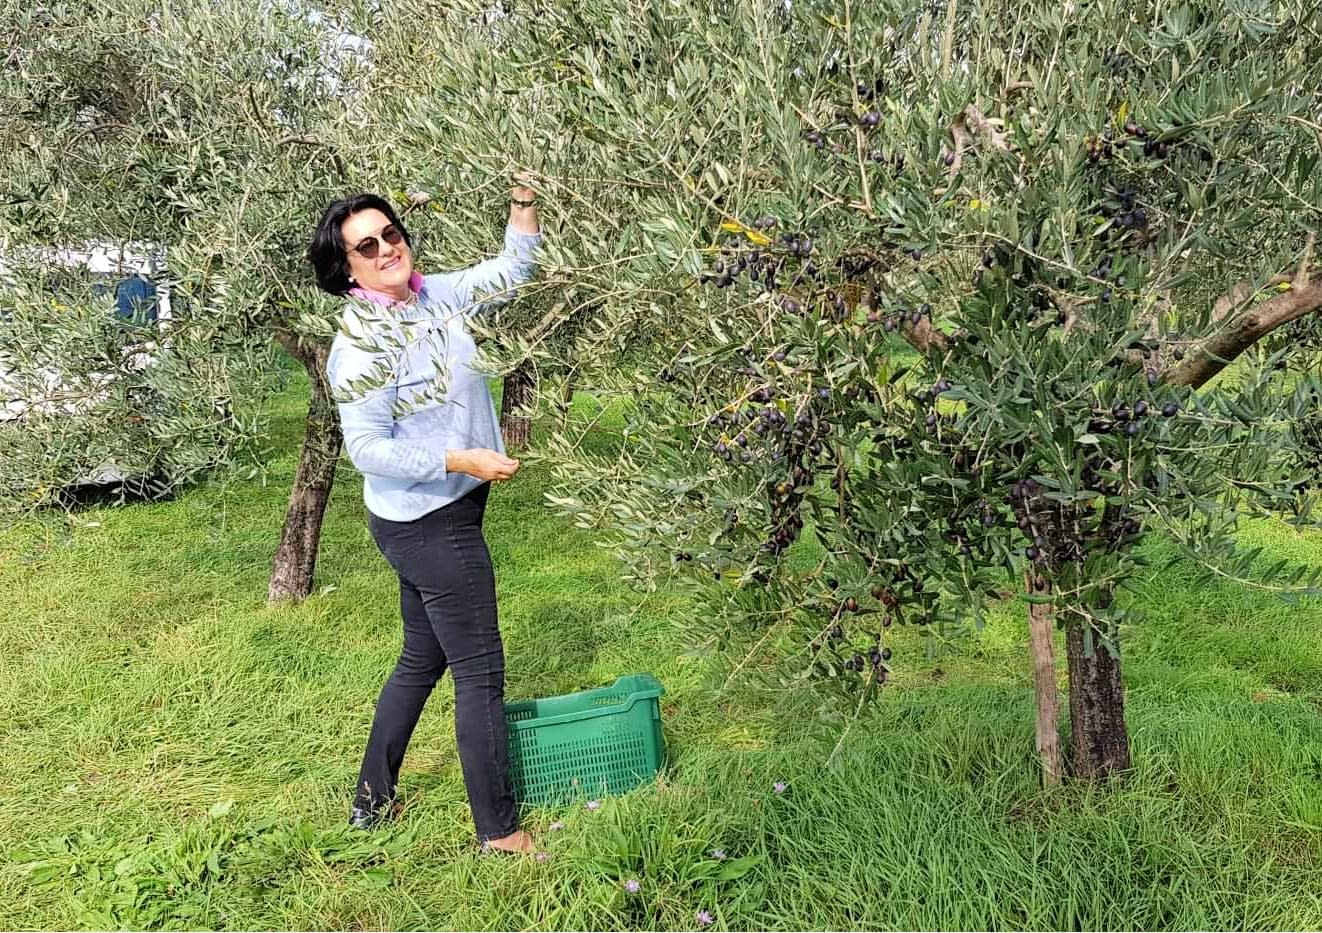 europe-competitions-the-best-olive-oils-croatian-producers-celebrate-87-wins-at-world-competition-olive-oil-times